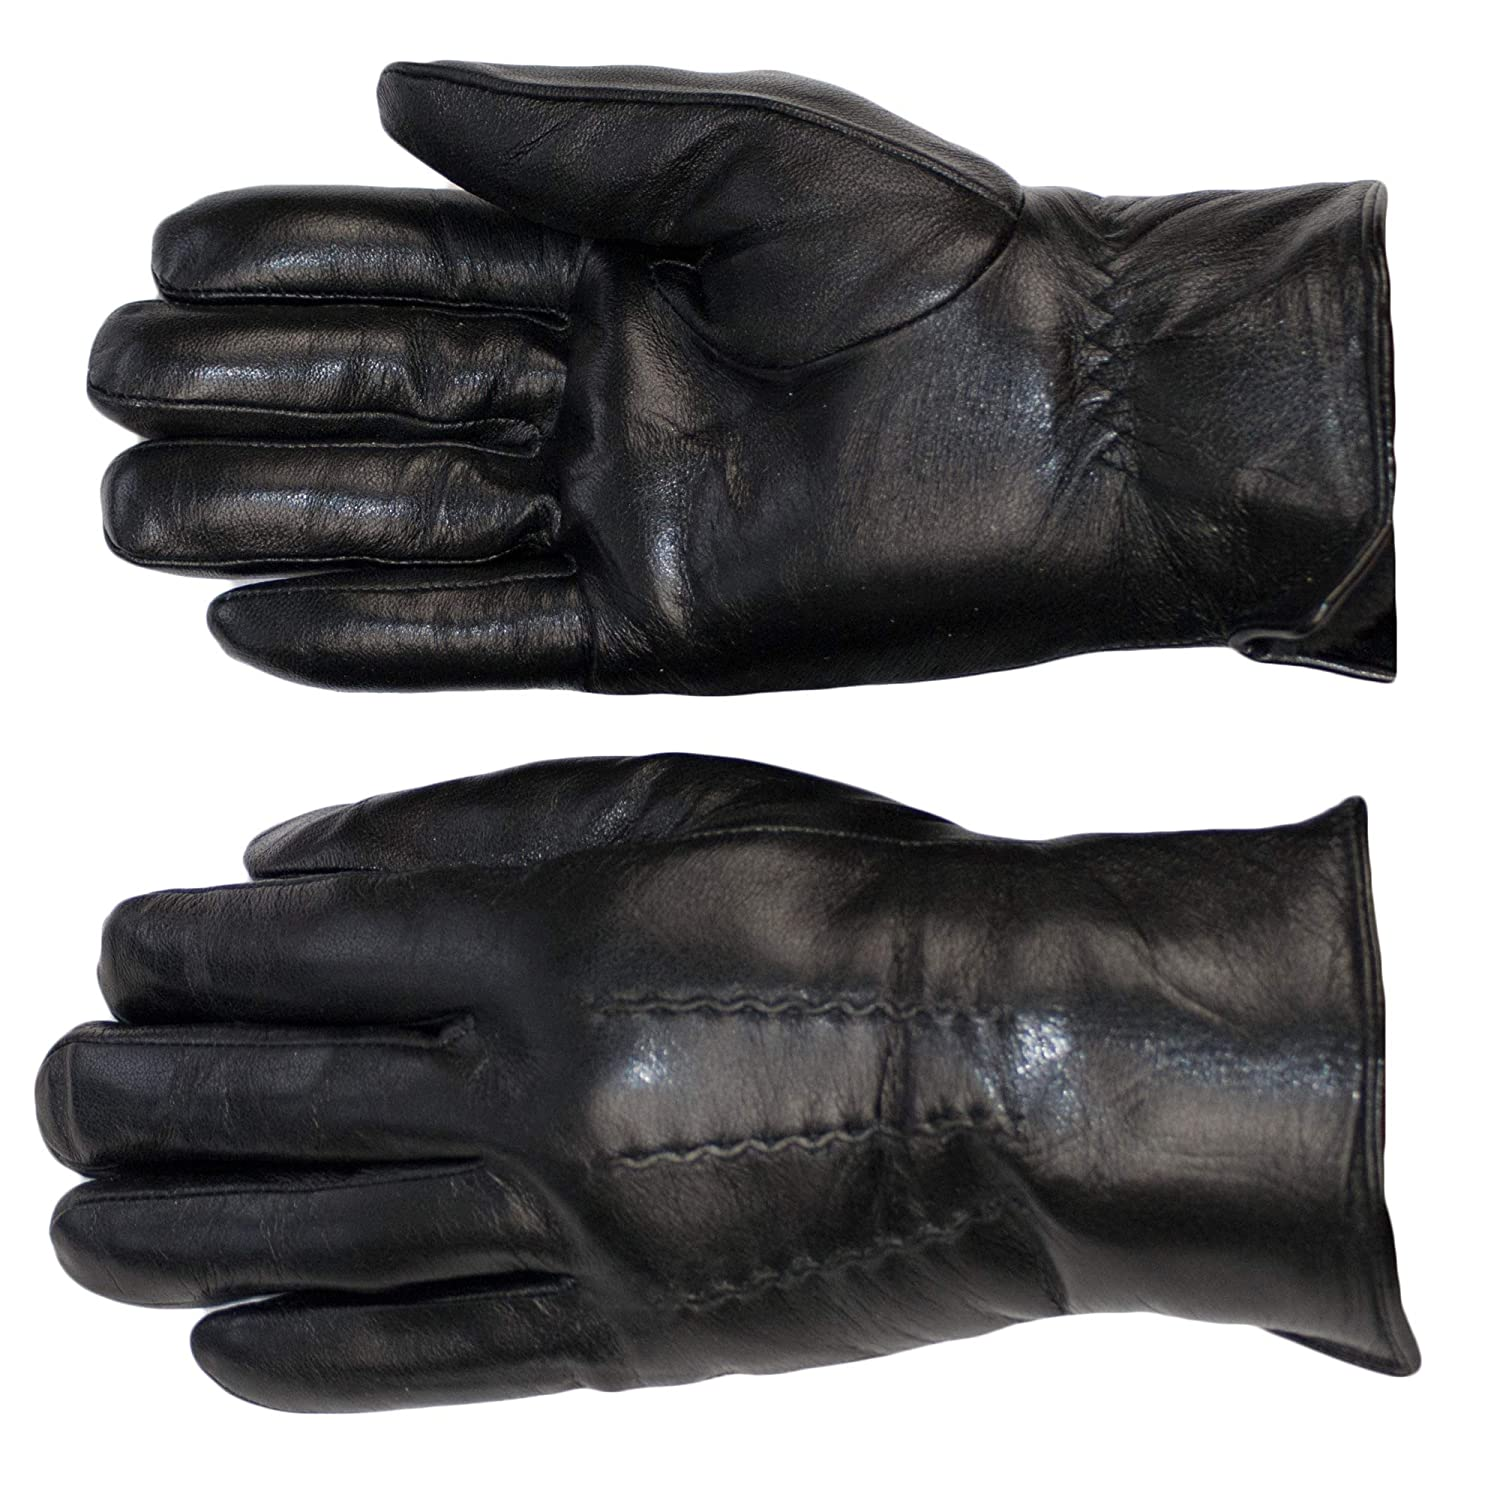 Dazoriginal Leather Gloves Mens Winter Gloves Wool Soft Black Leather EXTRATHICK